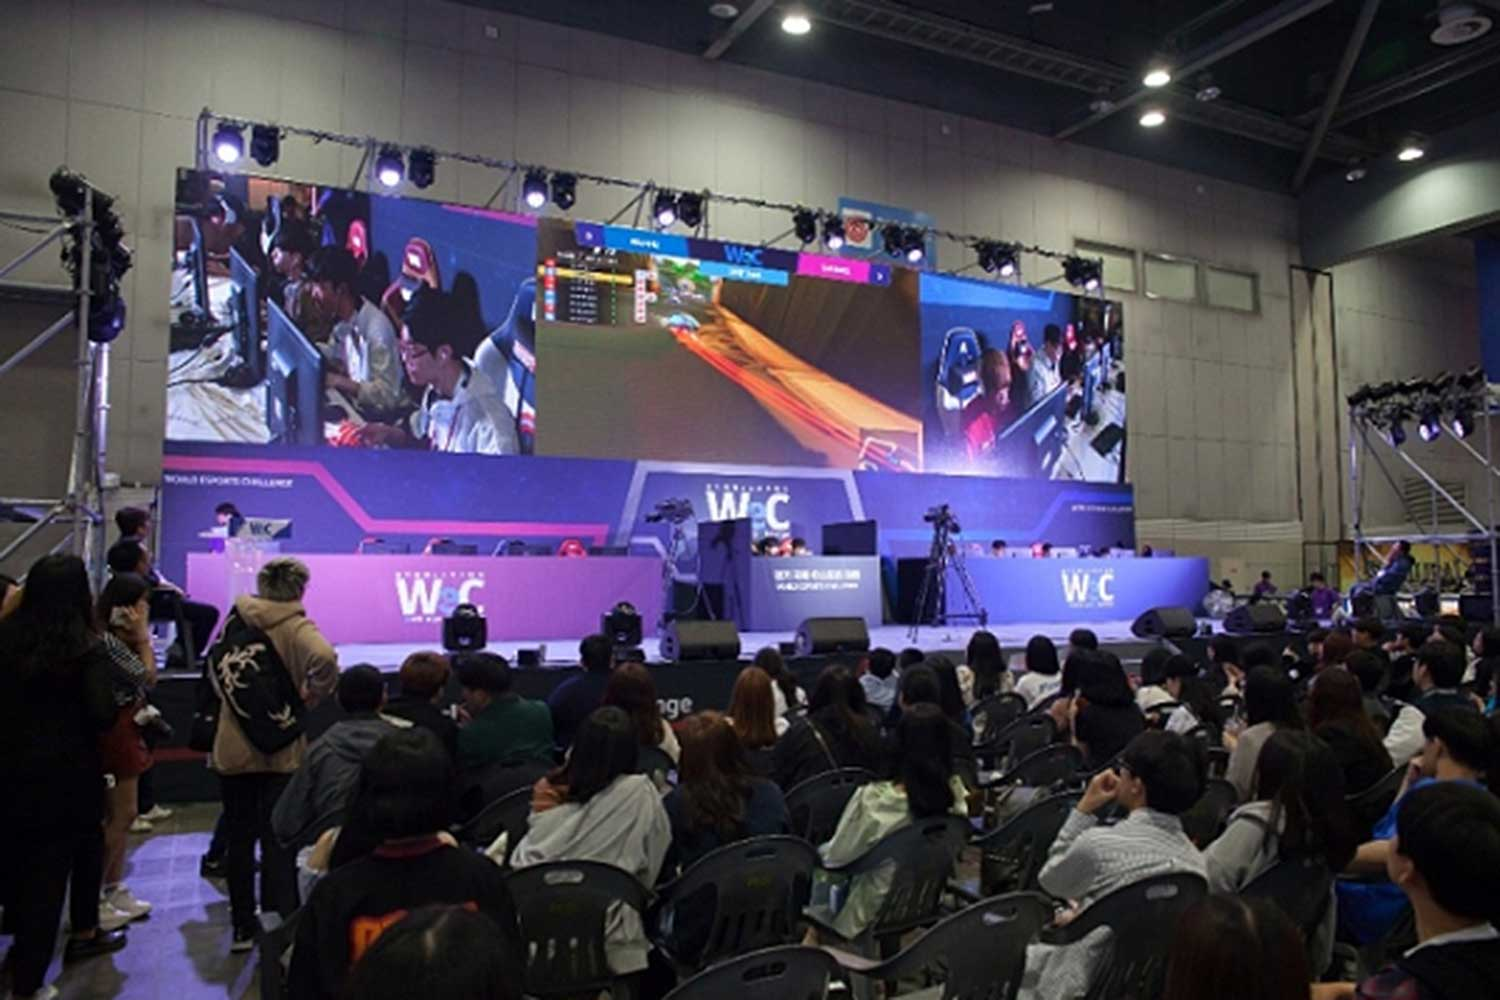 World eSports Challenge, an international e-sports event for amateurs, was held in Gyeonggi province in May. (Photo by Gyeonggi province via Pulse)